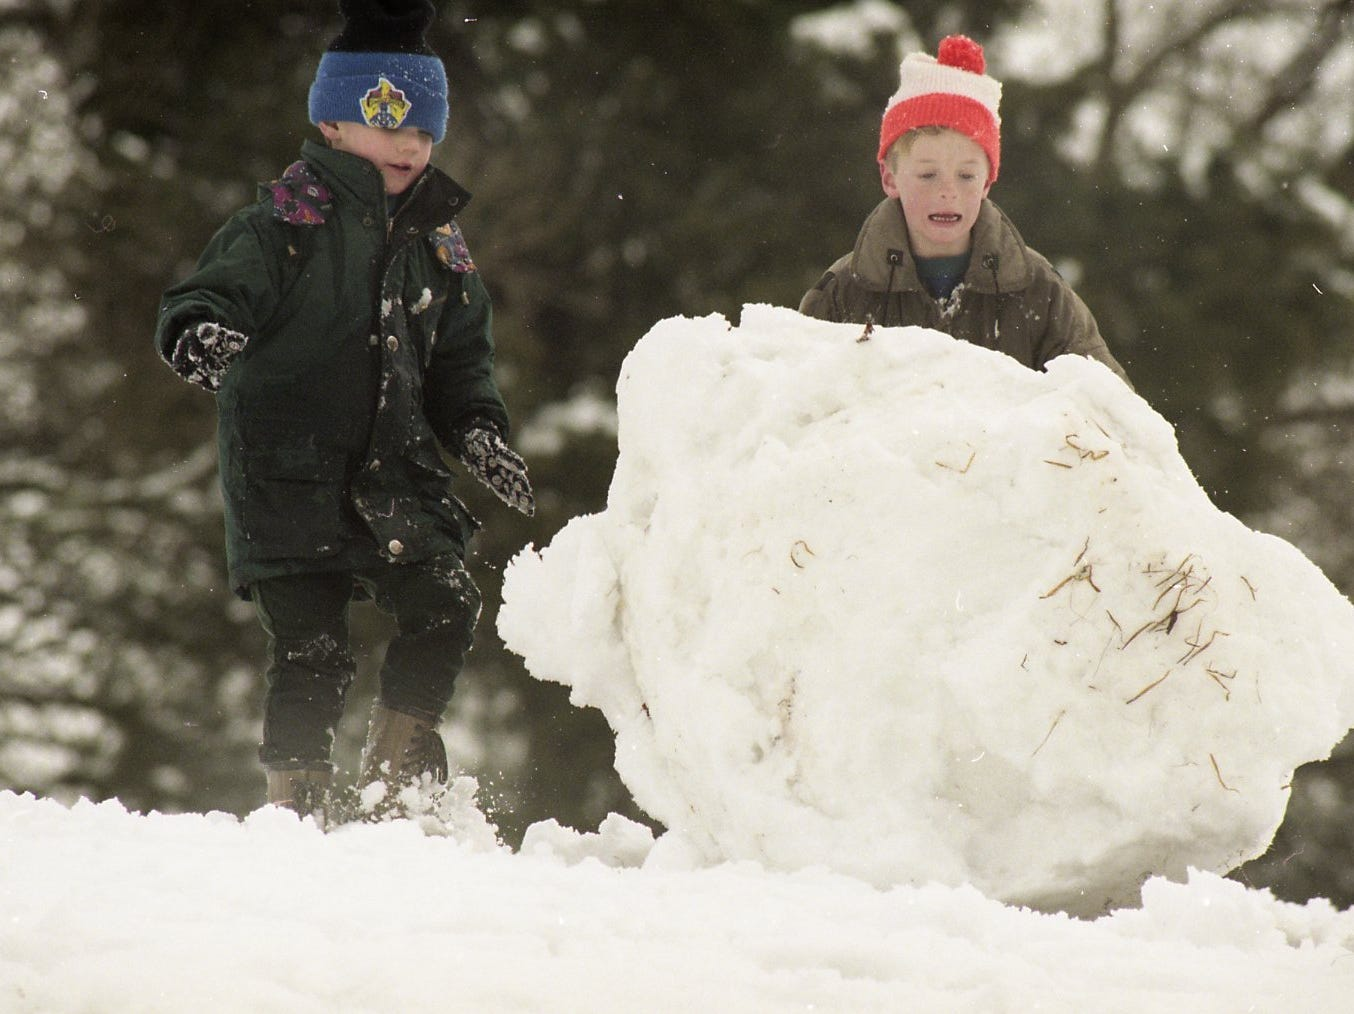 Cory Wright, 5, and his friend Robert Fisher, 7, roll a large snow ball down the hill in Concord Park in West Knoxville in January 1996. The boys struggled with their oversized snowball even with down hill gravity on their side.